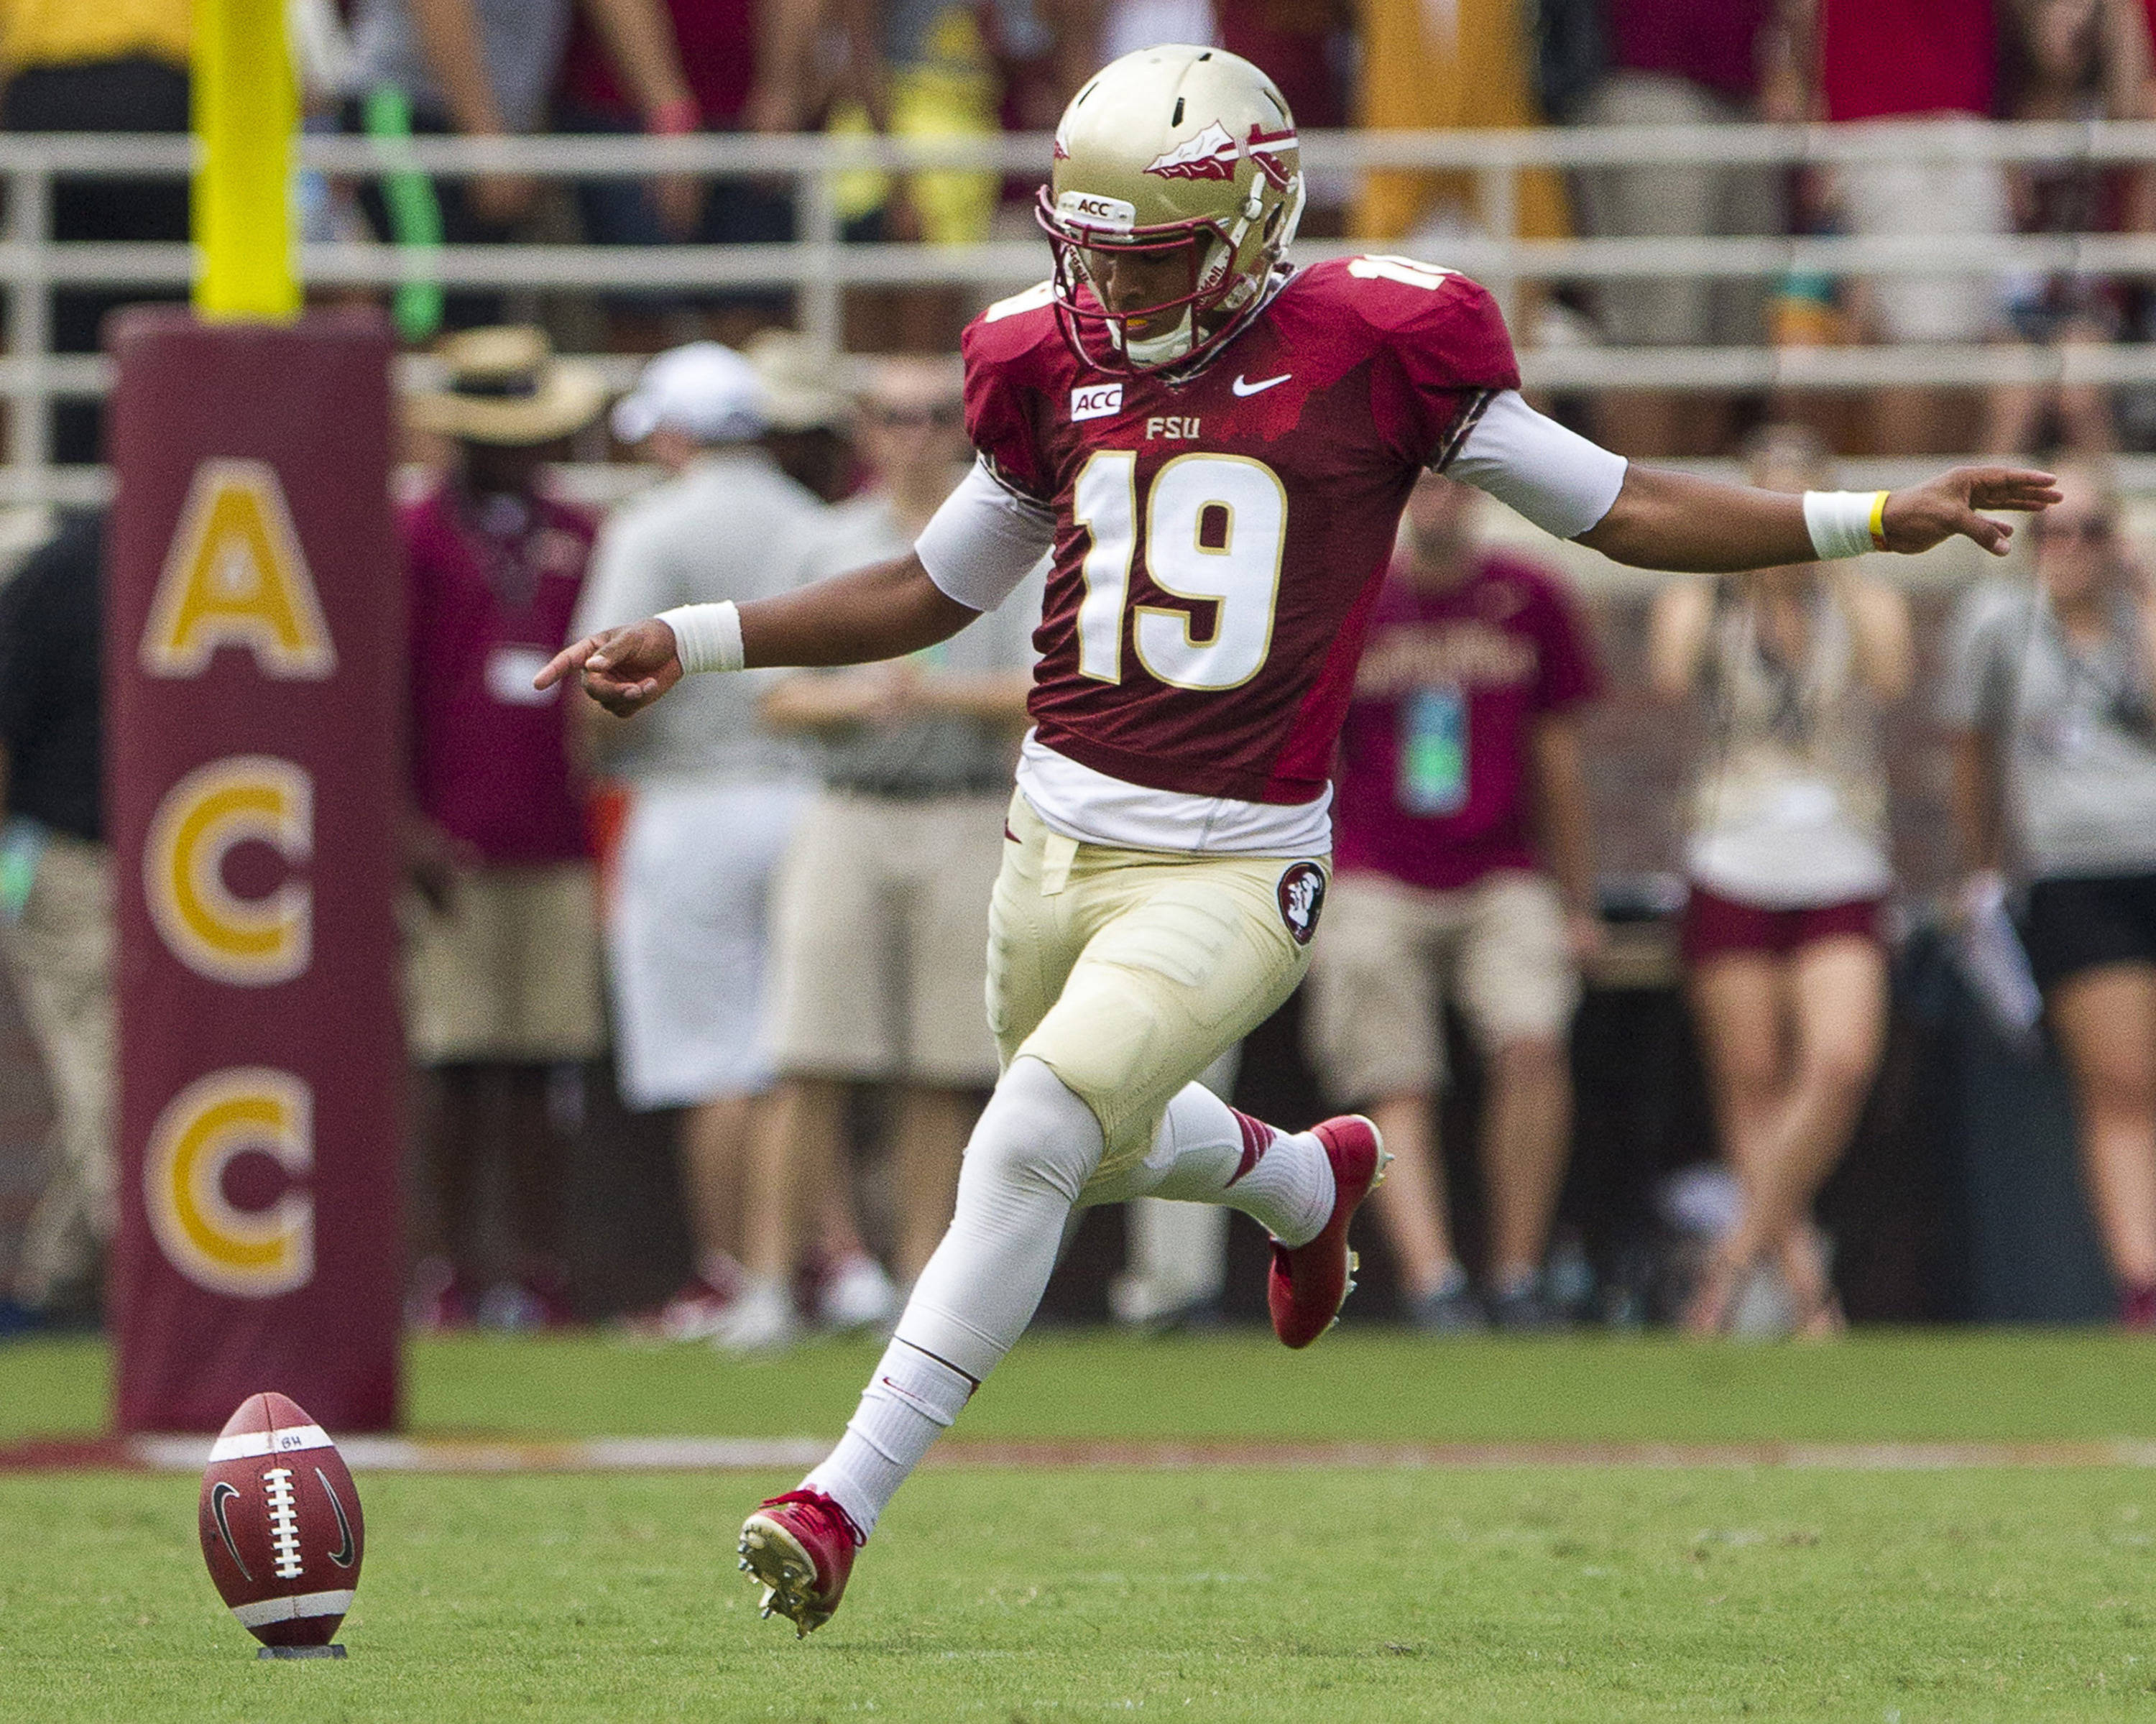 Roberto Aguayo (19) kicks off during FSU's 62-7 win over Nevada on Saturday, Sept 14, 2013 in Tallahassee, Fla.